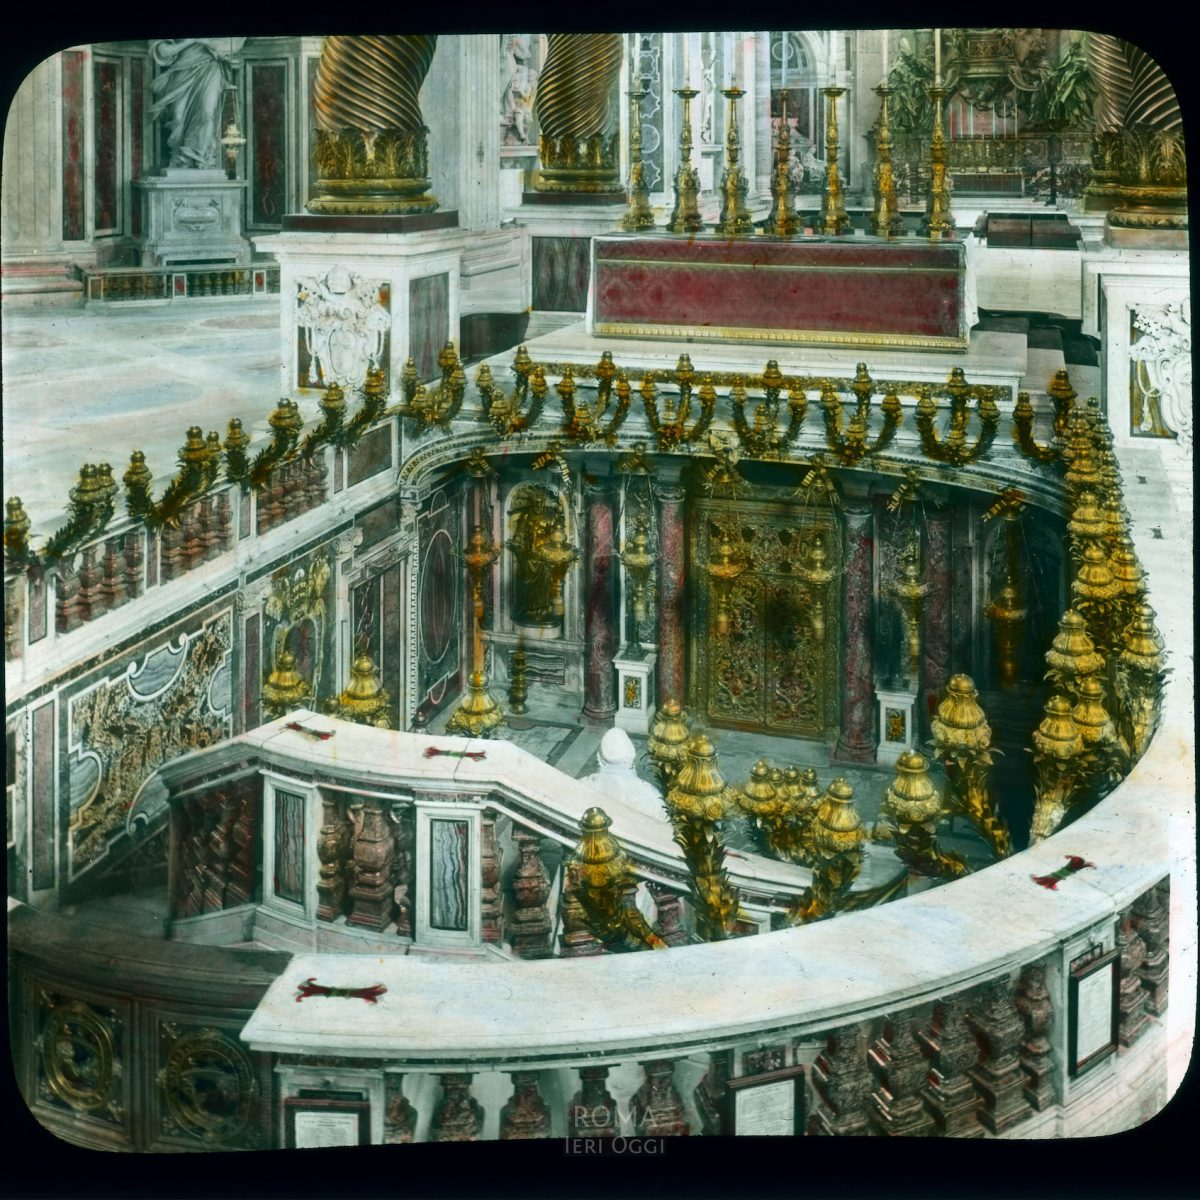 Vatican City. St. Peter's Basilica: interior, the Confessio (St. Peter's Tomb, 1615-1616) View in tinted lantern slide, ca. 1919-1938. The basilica dates from ca. 1506-1626.